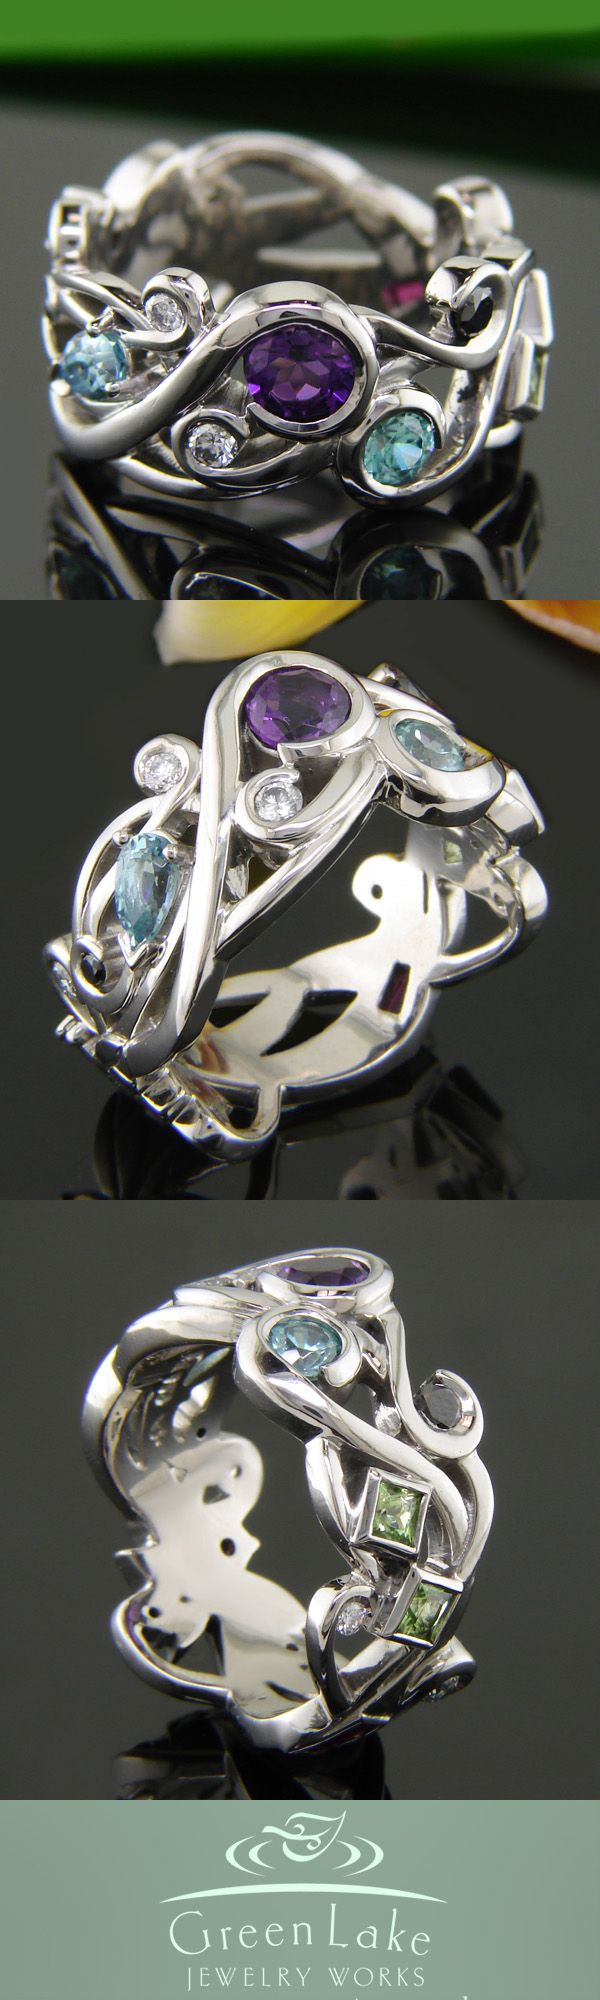 Custom #MothersRing in pierced palladium with family birthstones: White and black #diamonds, peridot, pink tourmaline, aquamarine, amethyst, and ruby. #GreenLakeJewelry